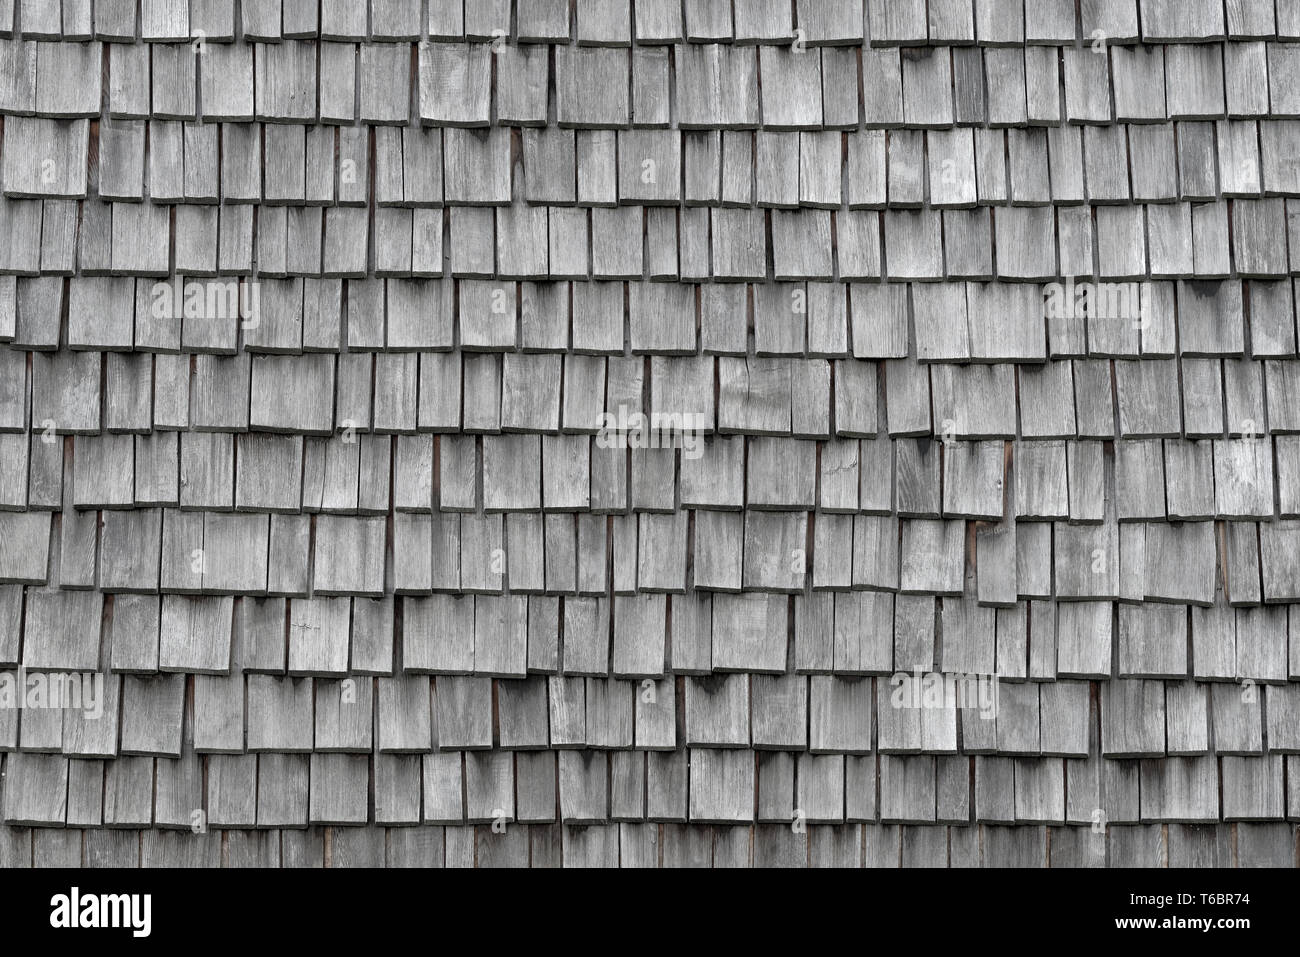 Grey Roofing Shingles Stock Photos Amp Grey Roofing Shingles